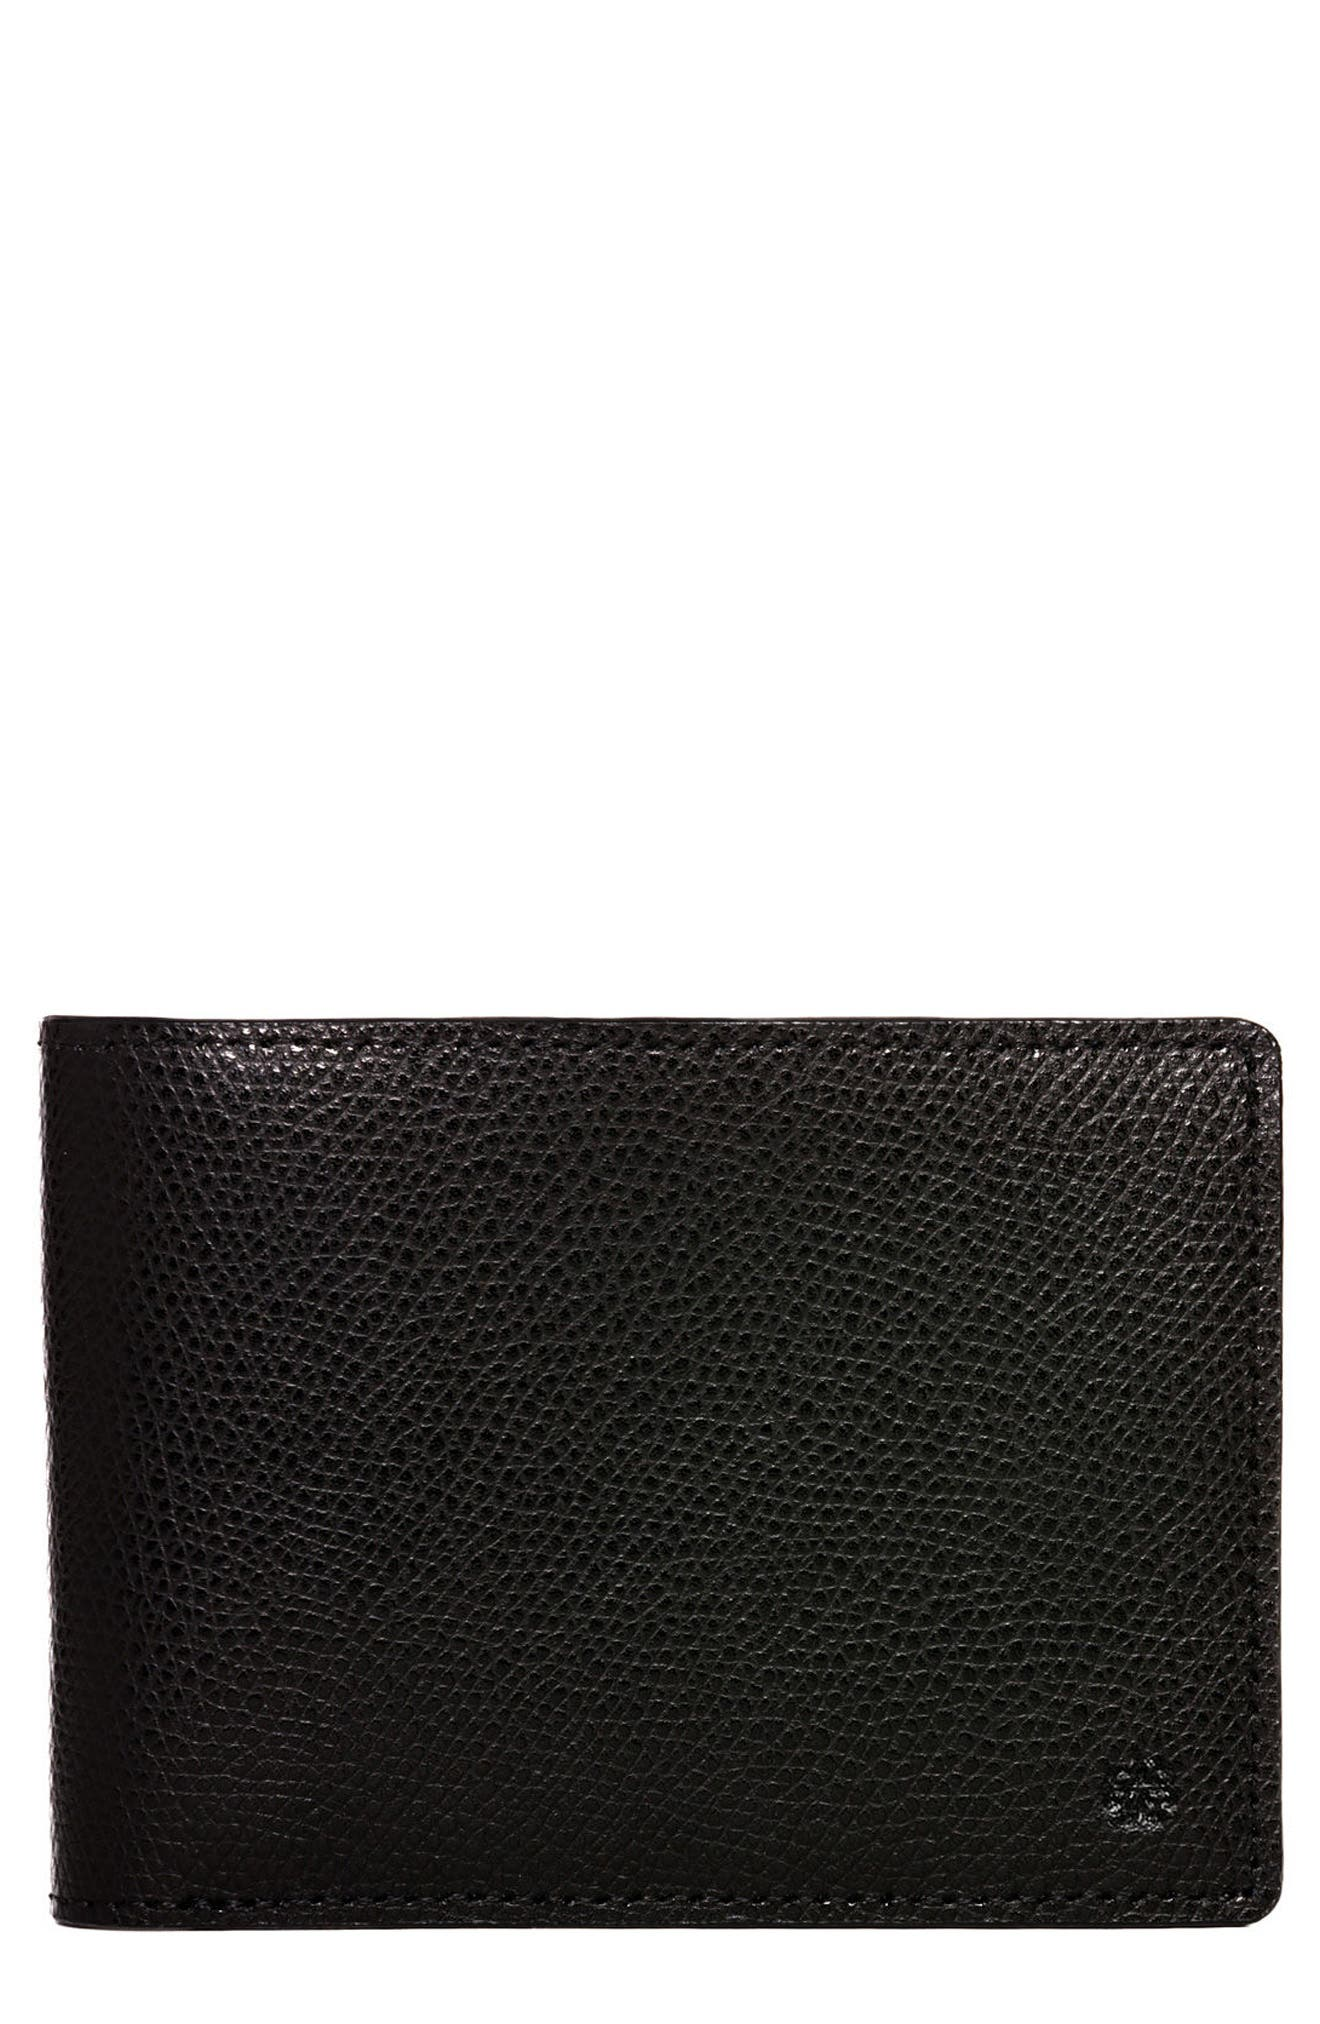 HOOK + ALBERT Leather Wallet